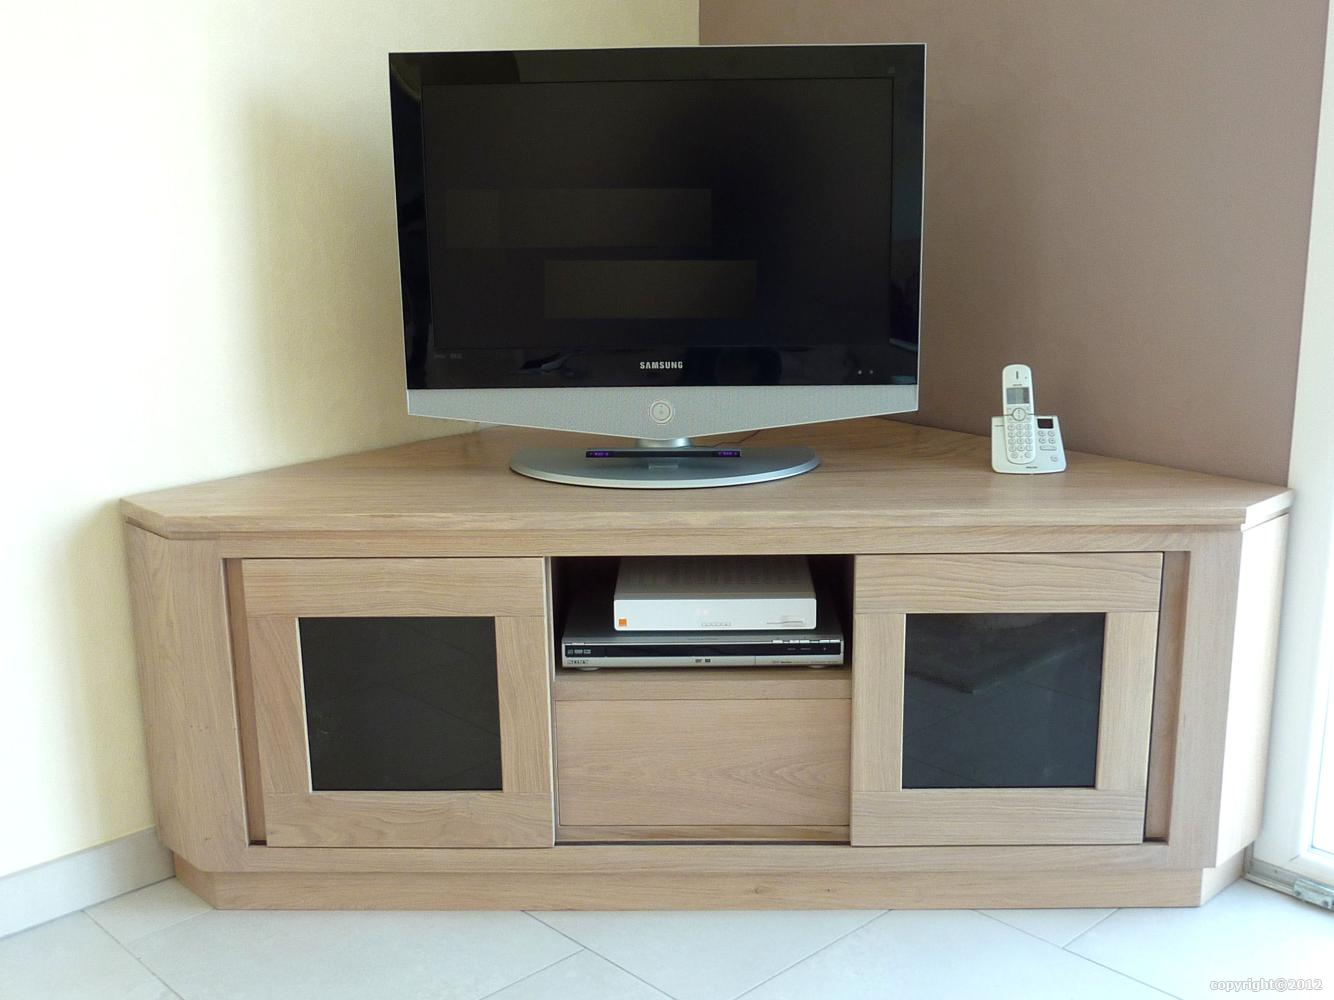 Meuble Tv Hifi Sur Mesure En Massif Style Contemporain # Meuble D'Angle Tv Contemporain